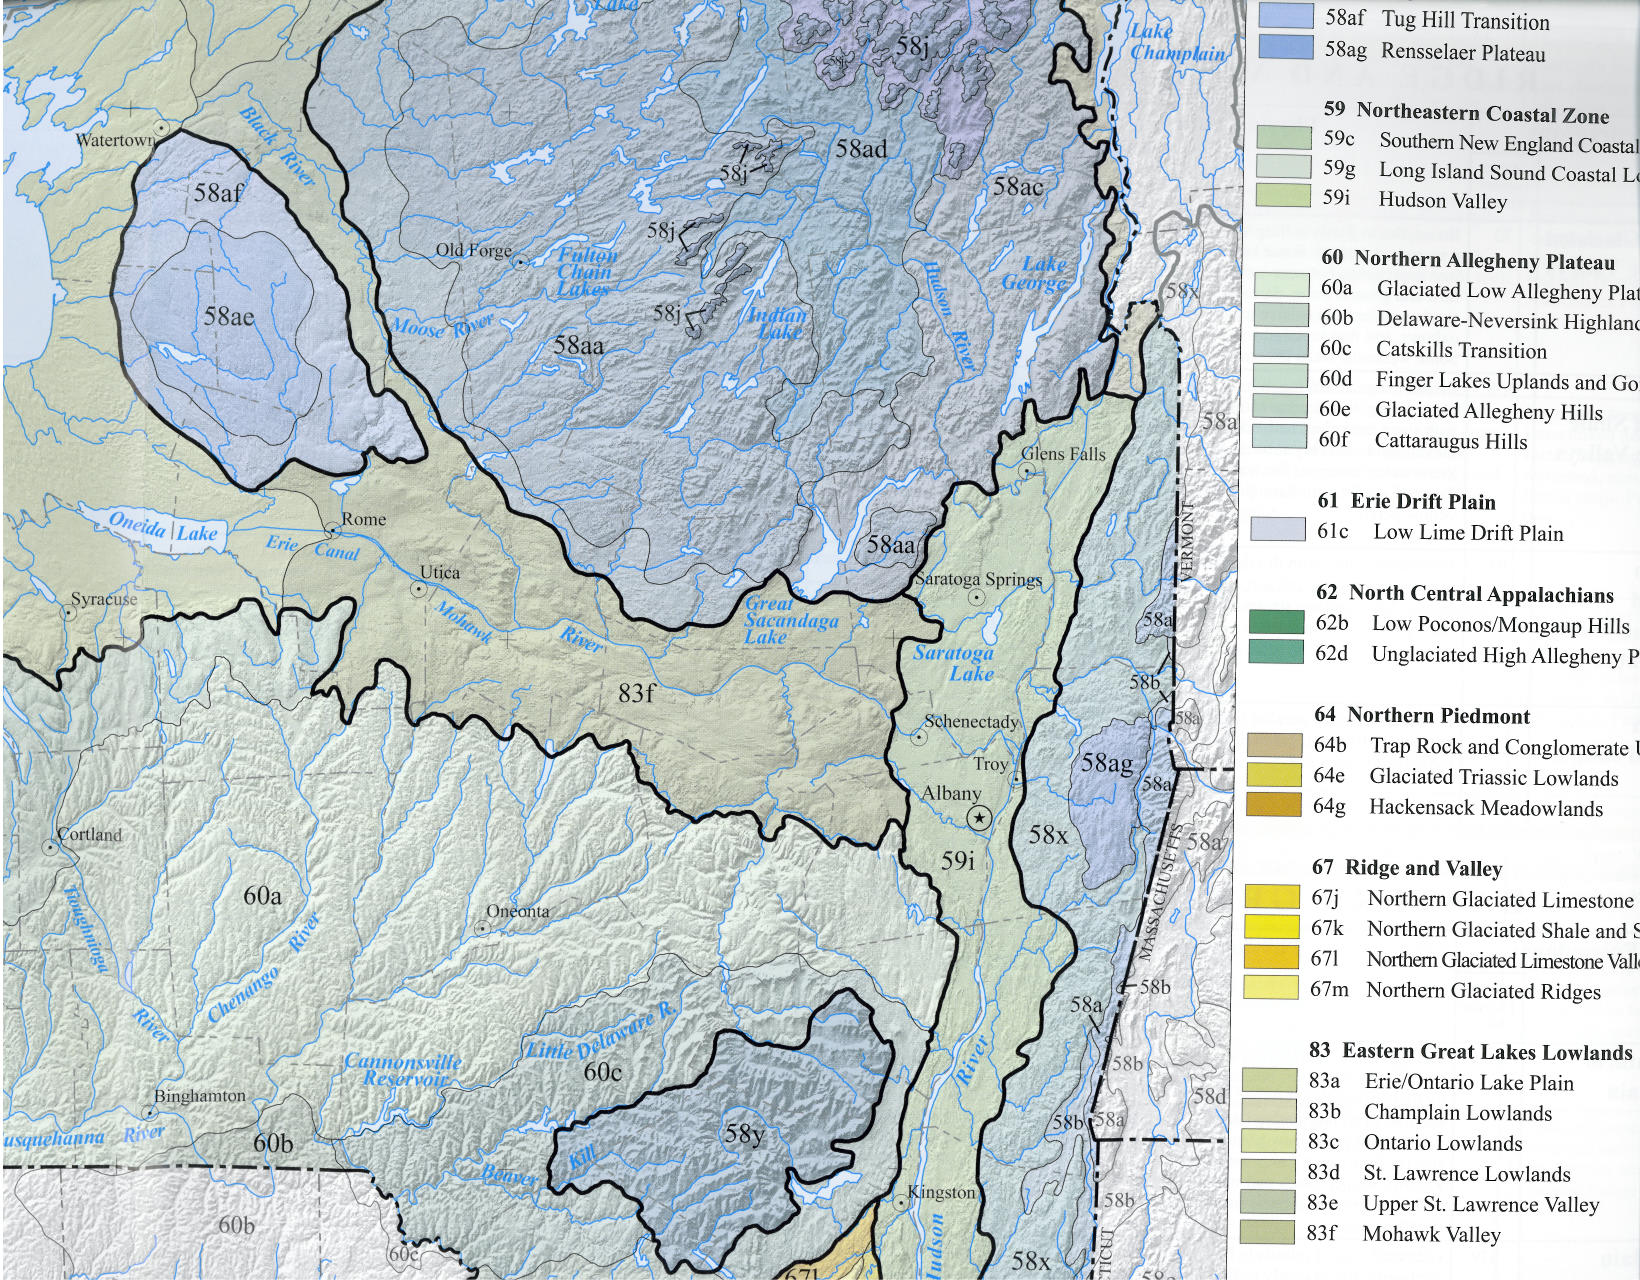 Nyc Map Gis.Ecoregions Of New York Map Available For Gis New York Flora